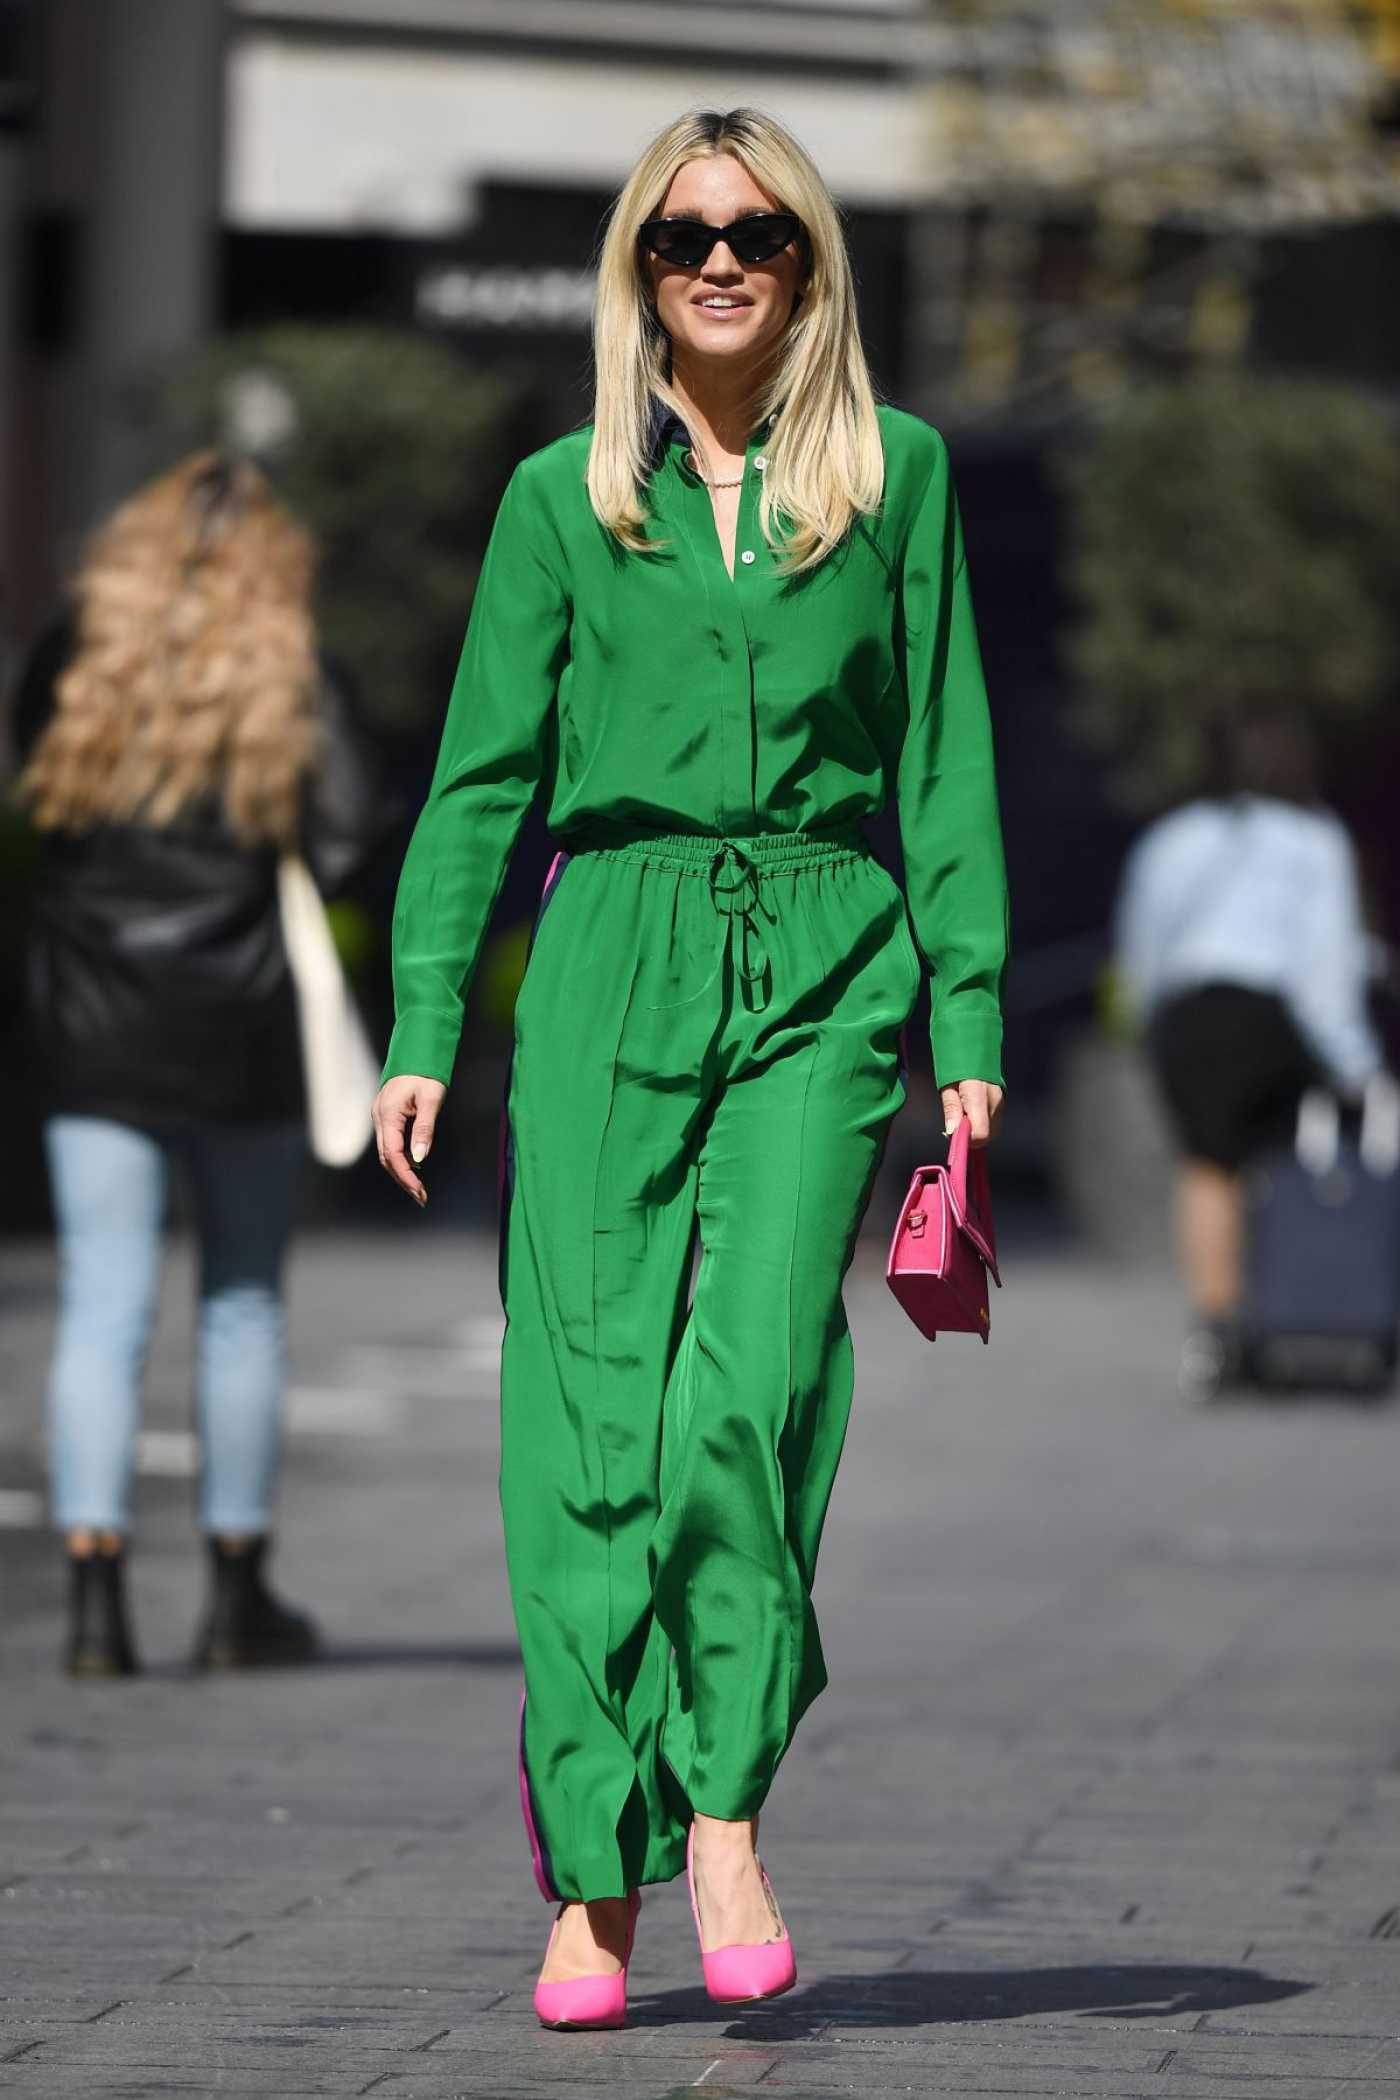 Ashley Roberts in a Green Suit Leaves the Heart Radio in London 05/19/2021